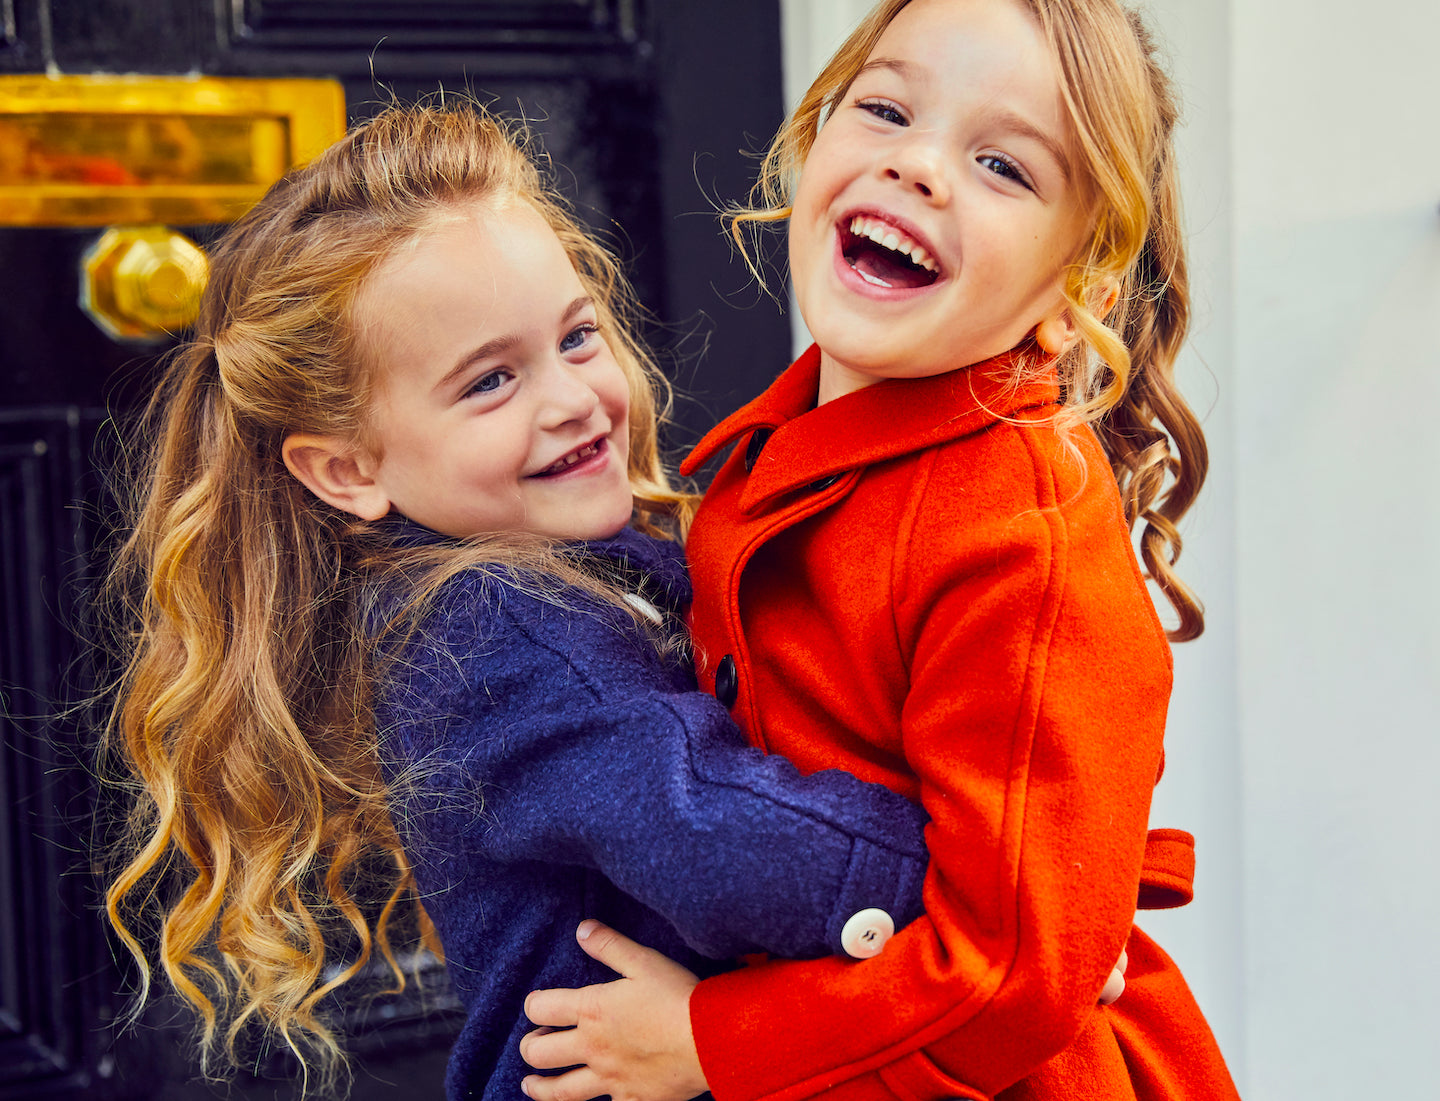 Luxury girls coats by Britannical luxury children's coats luxury kids coats luxury children's clothing made in Britain